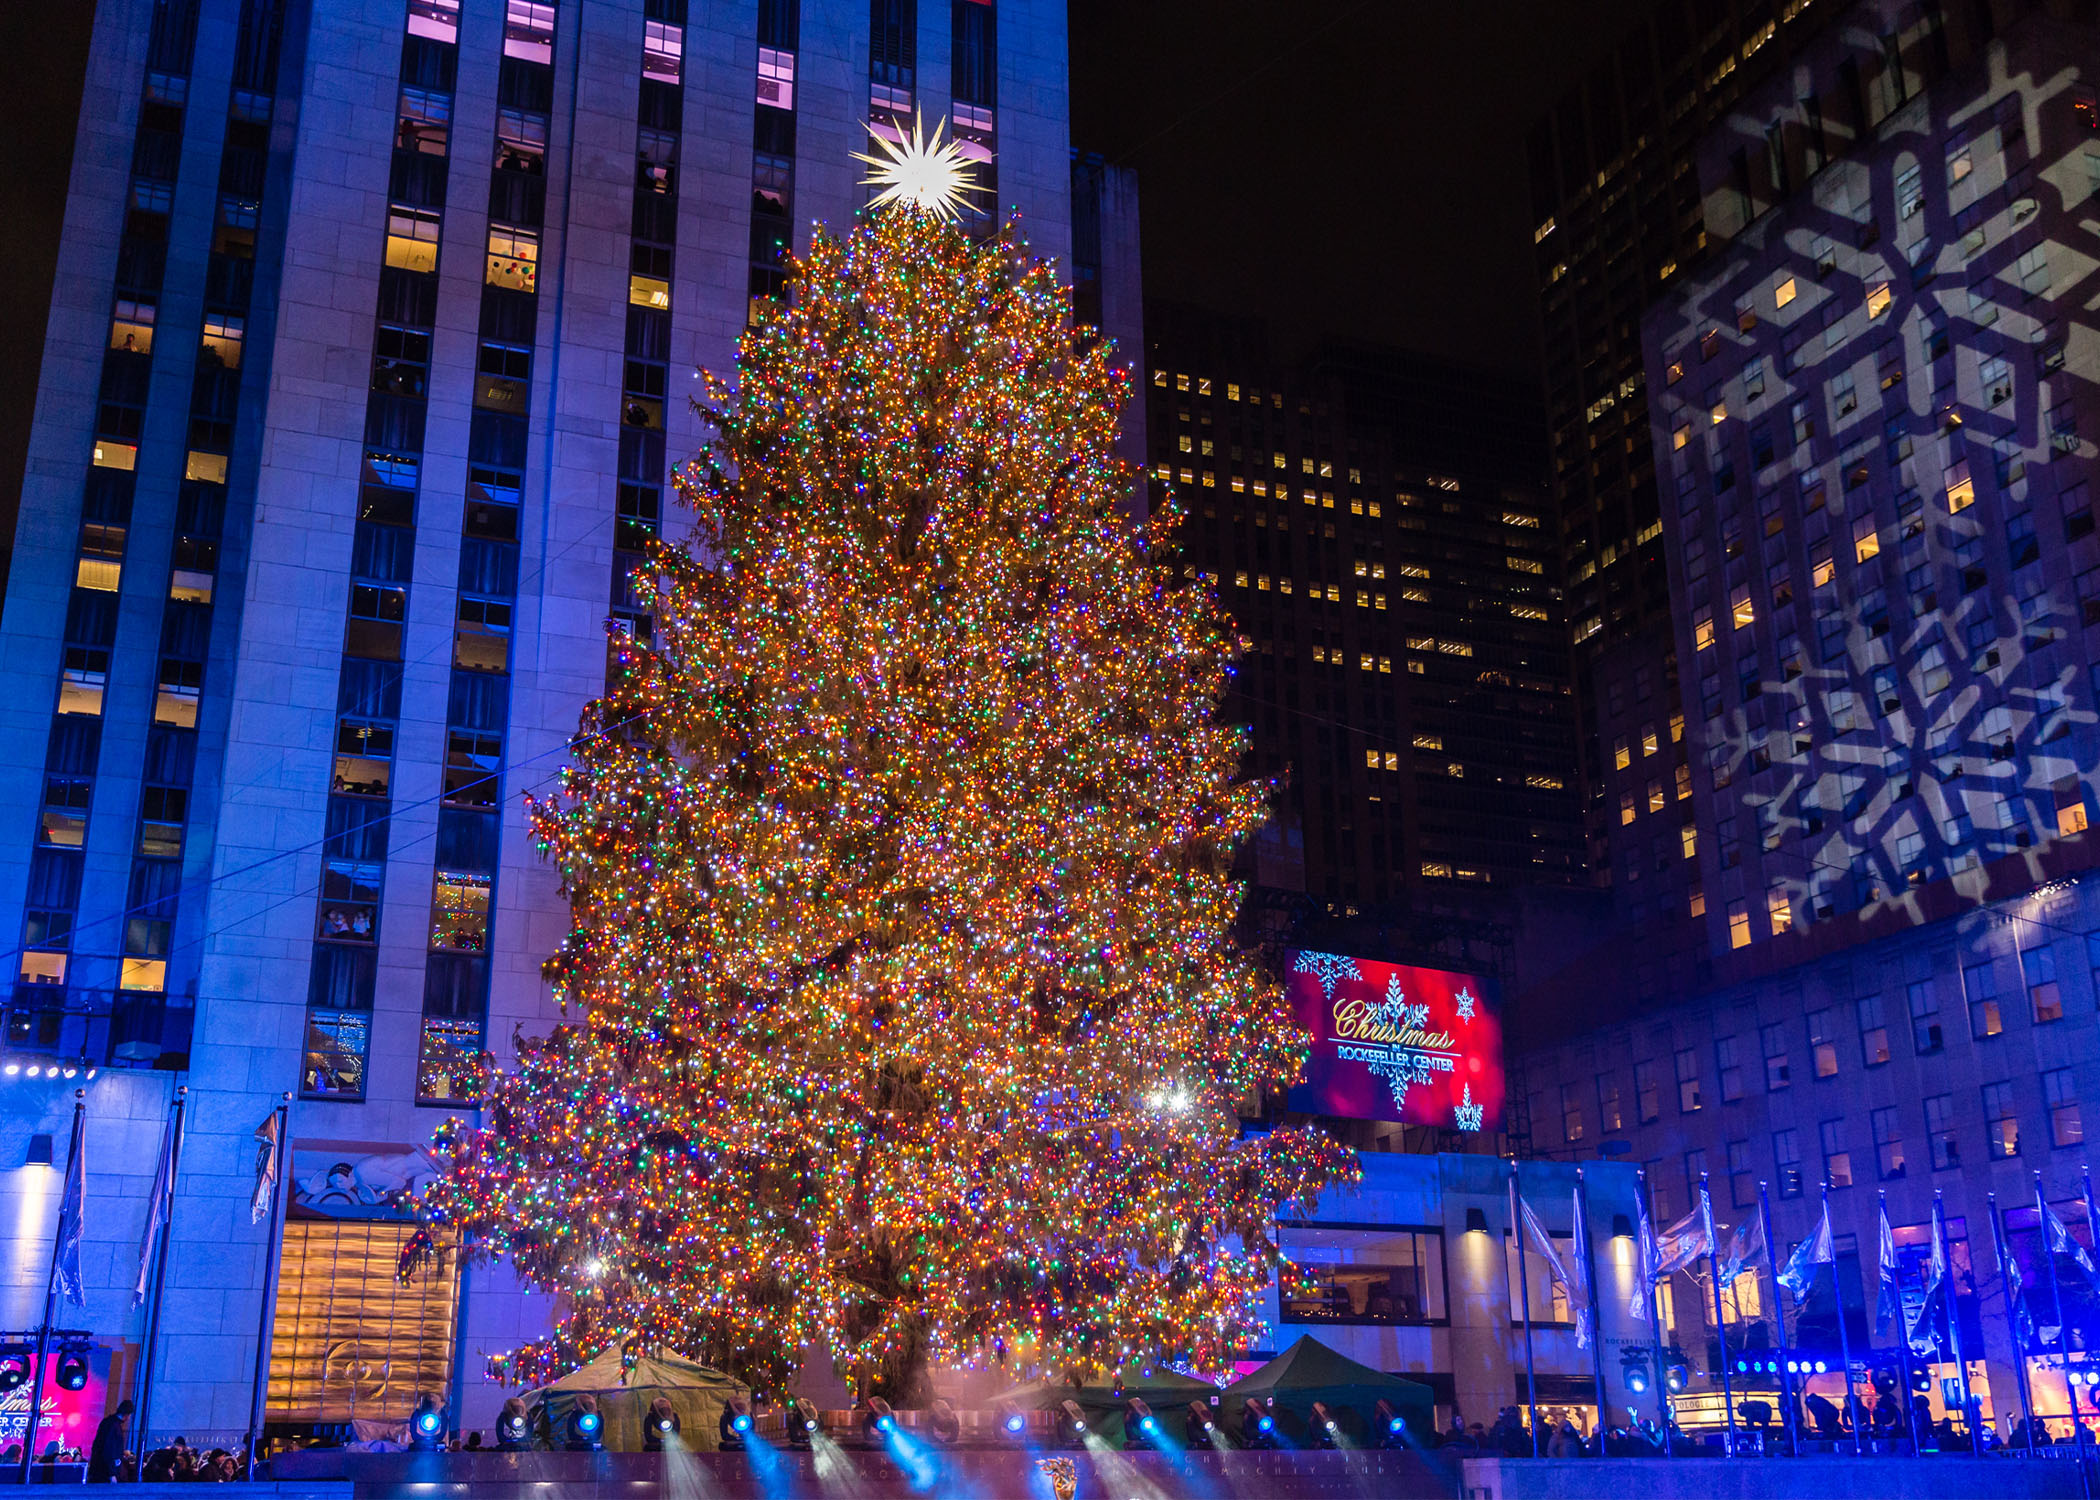 New York City Christmas Tree Lighting 2020 Rockefeller Center Christmas tree to return, possibly without crowds